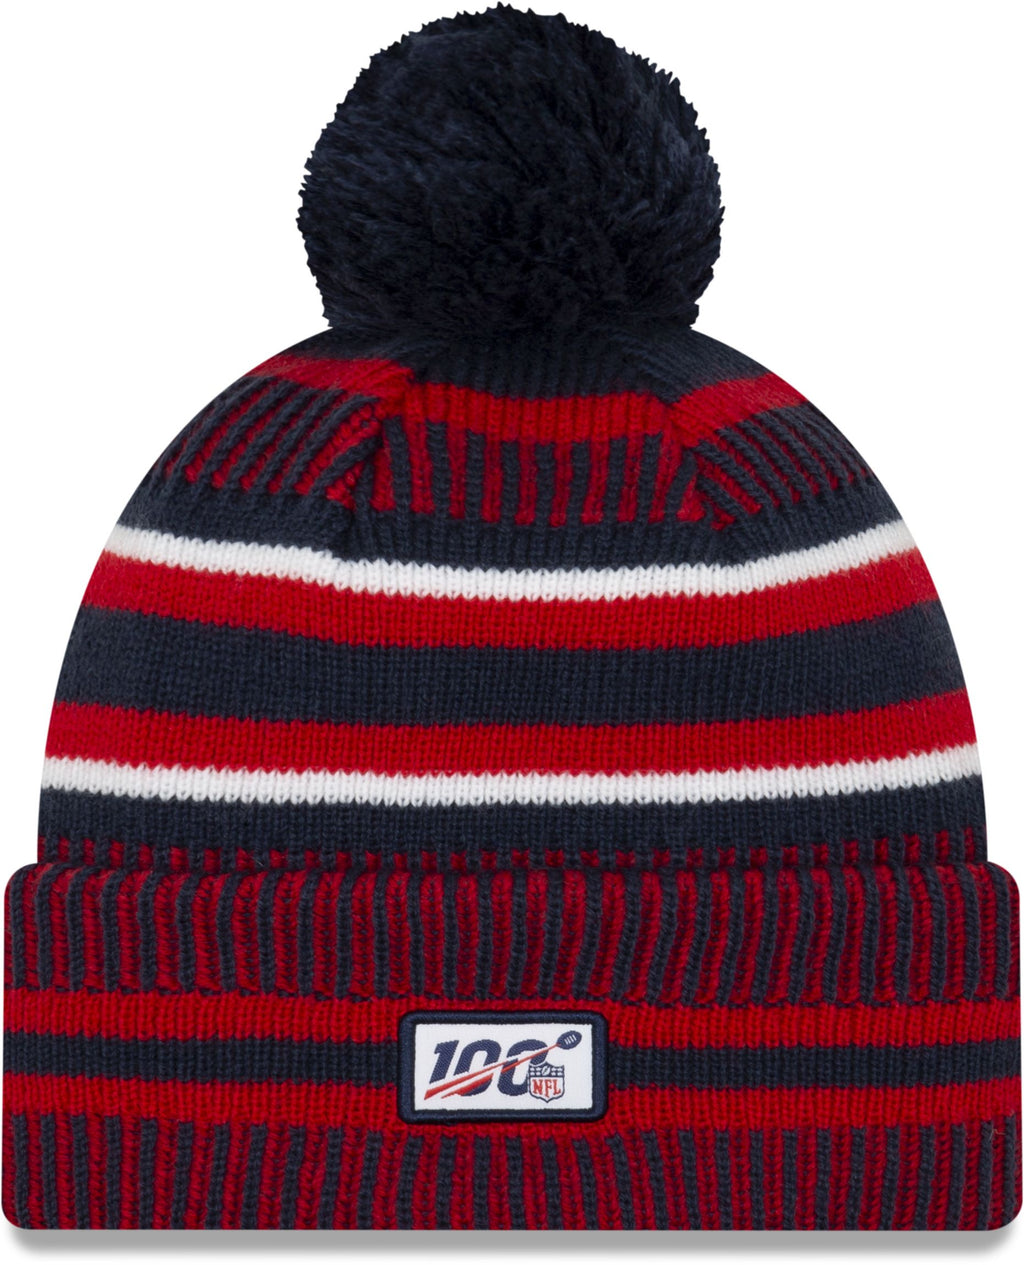 New Era ONF19 Cold Weather New England Patriots Bobble Beanie Hat Navy